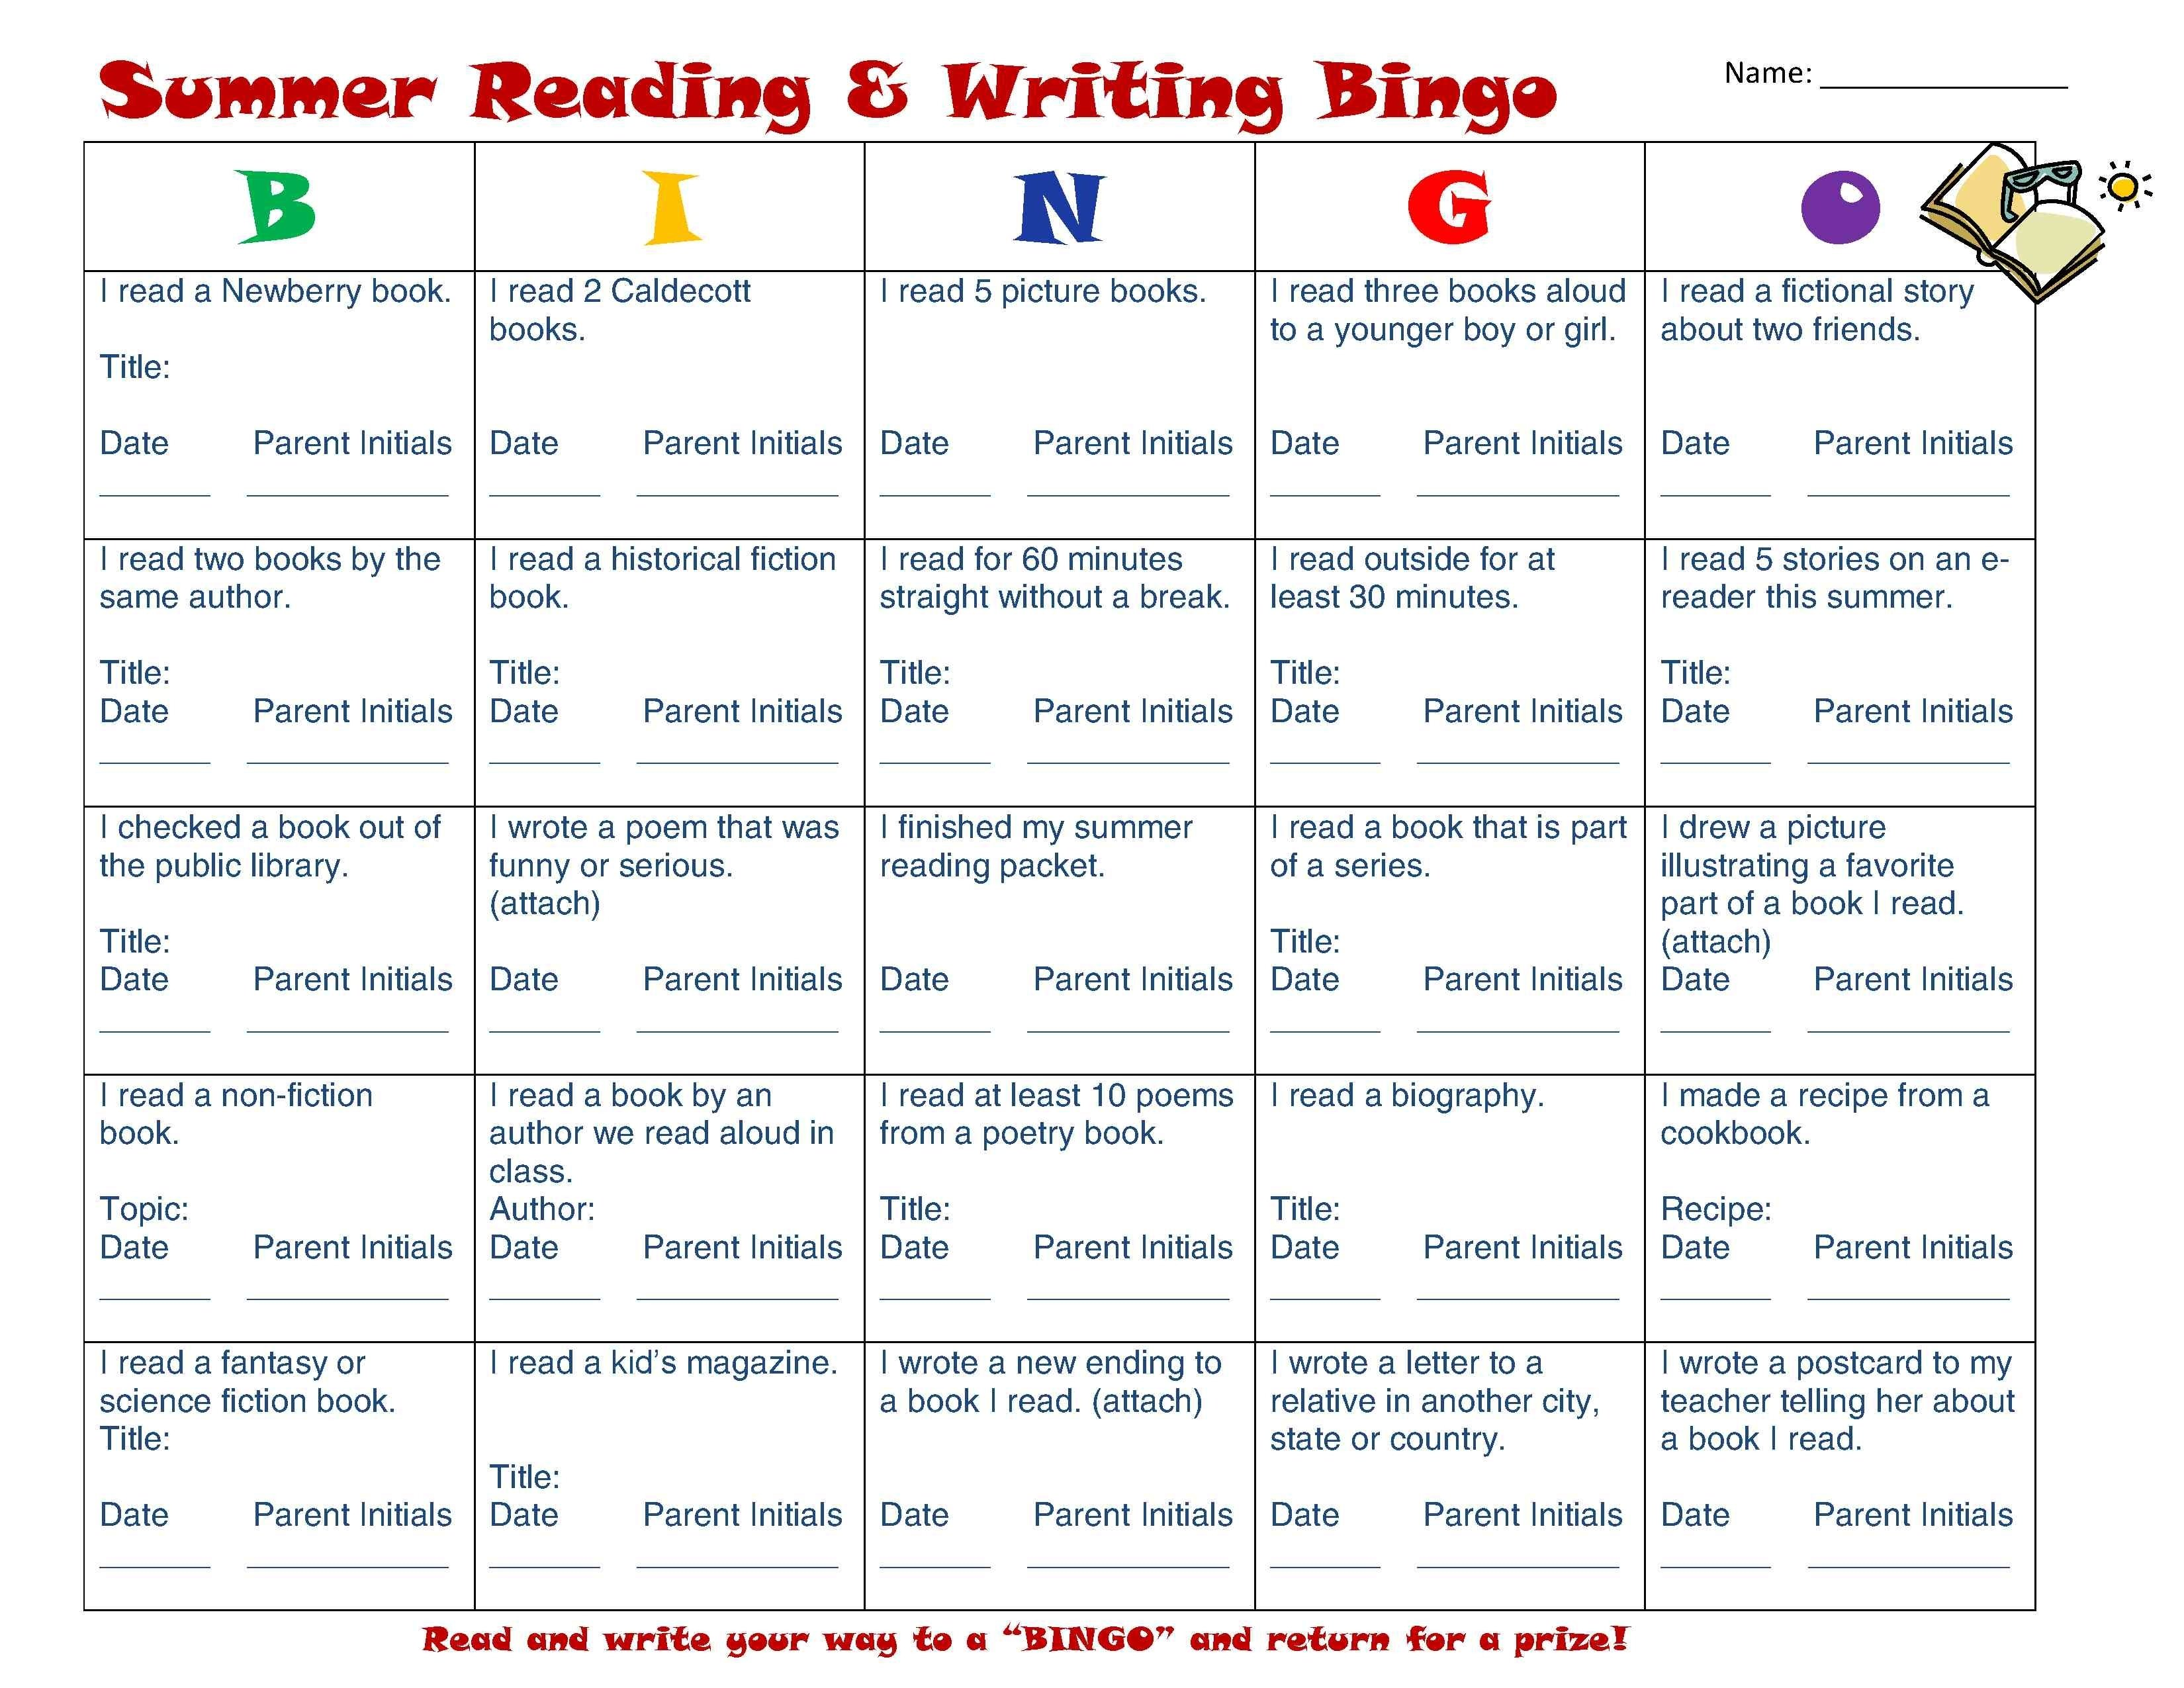 10 Best Writing Ideas For 4Th Grade 5 ways to keep your students writing all summer long scholastic 2020